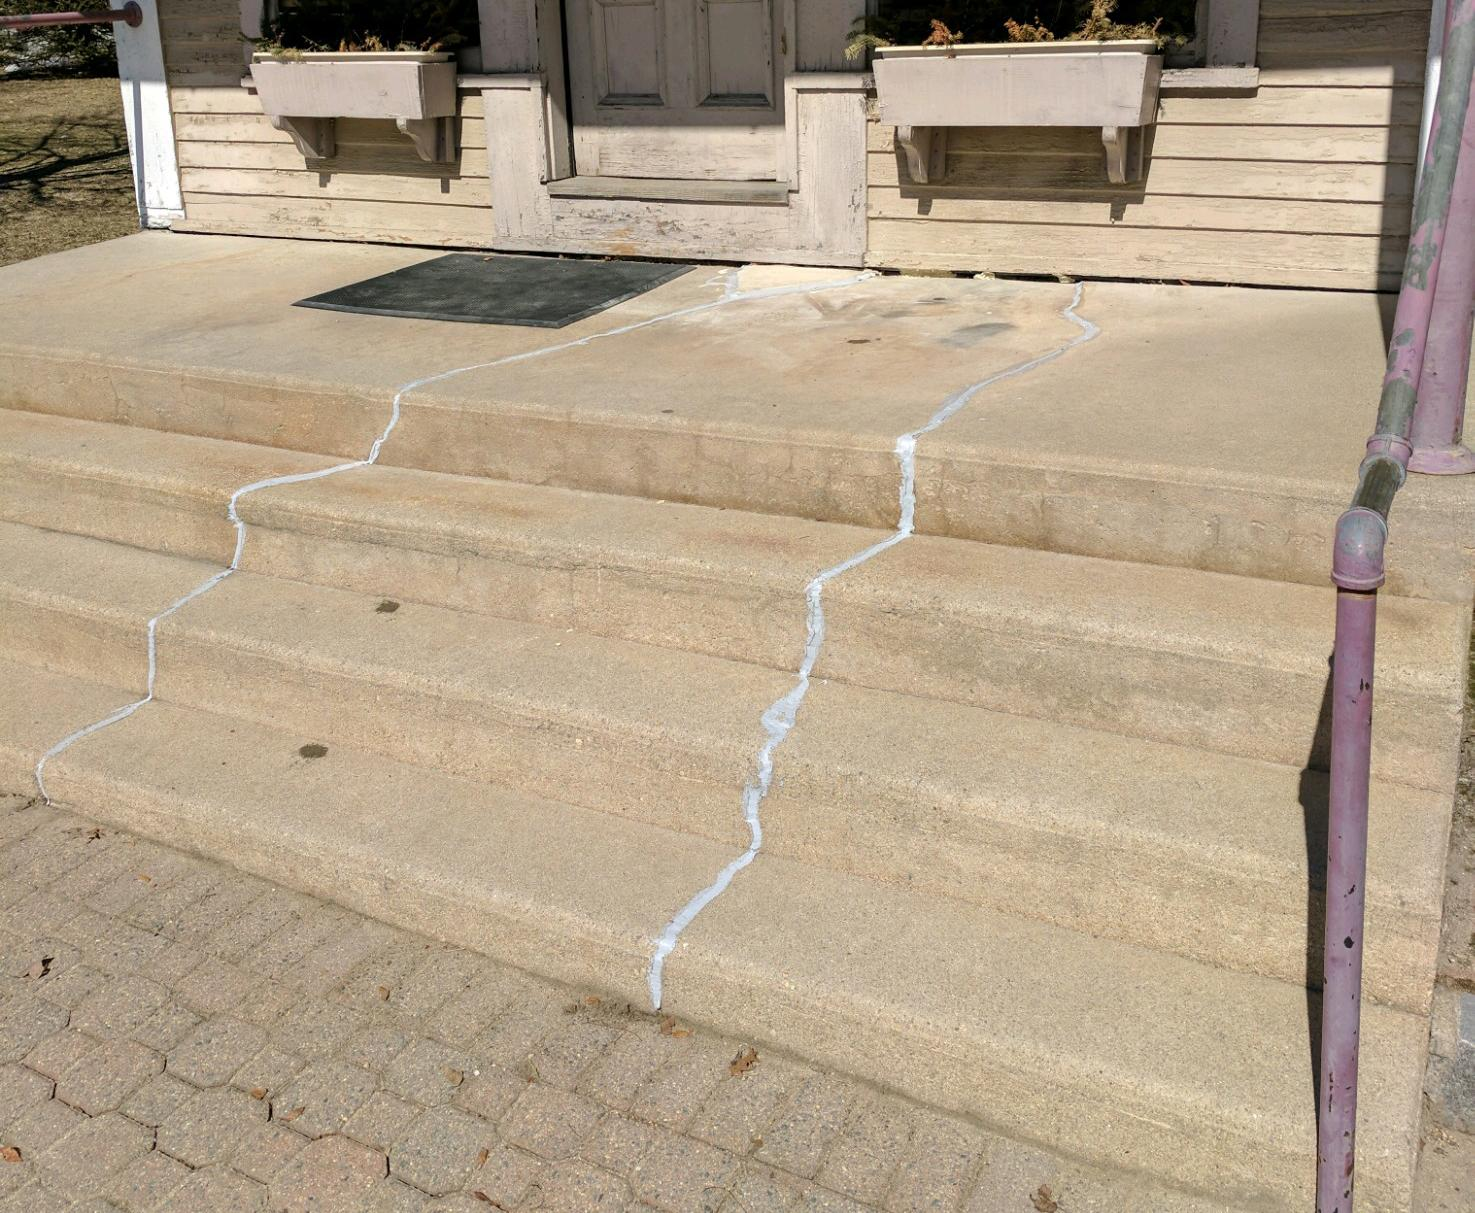 After View - Repairs Made to Settling and Cracked Concrete Steps